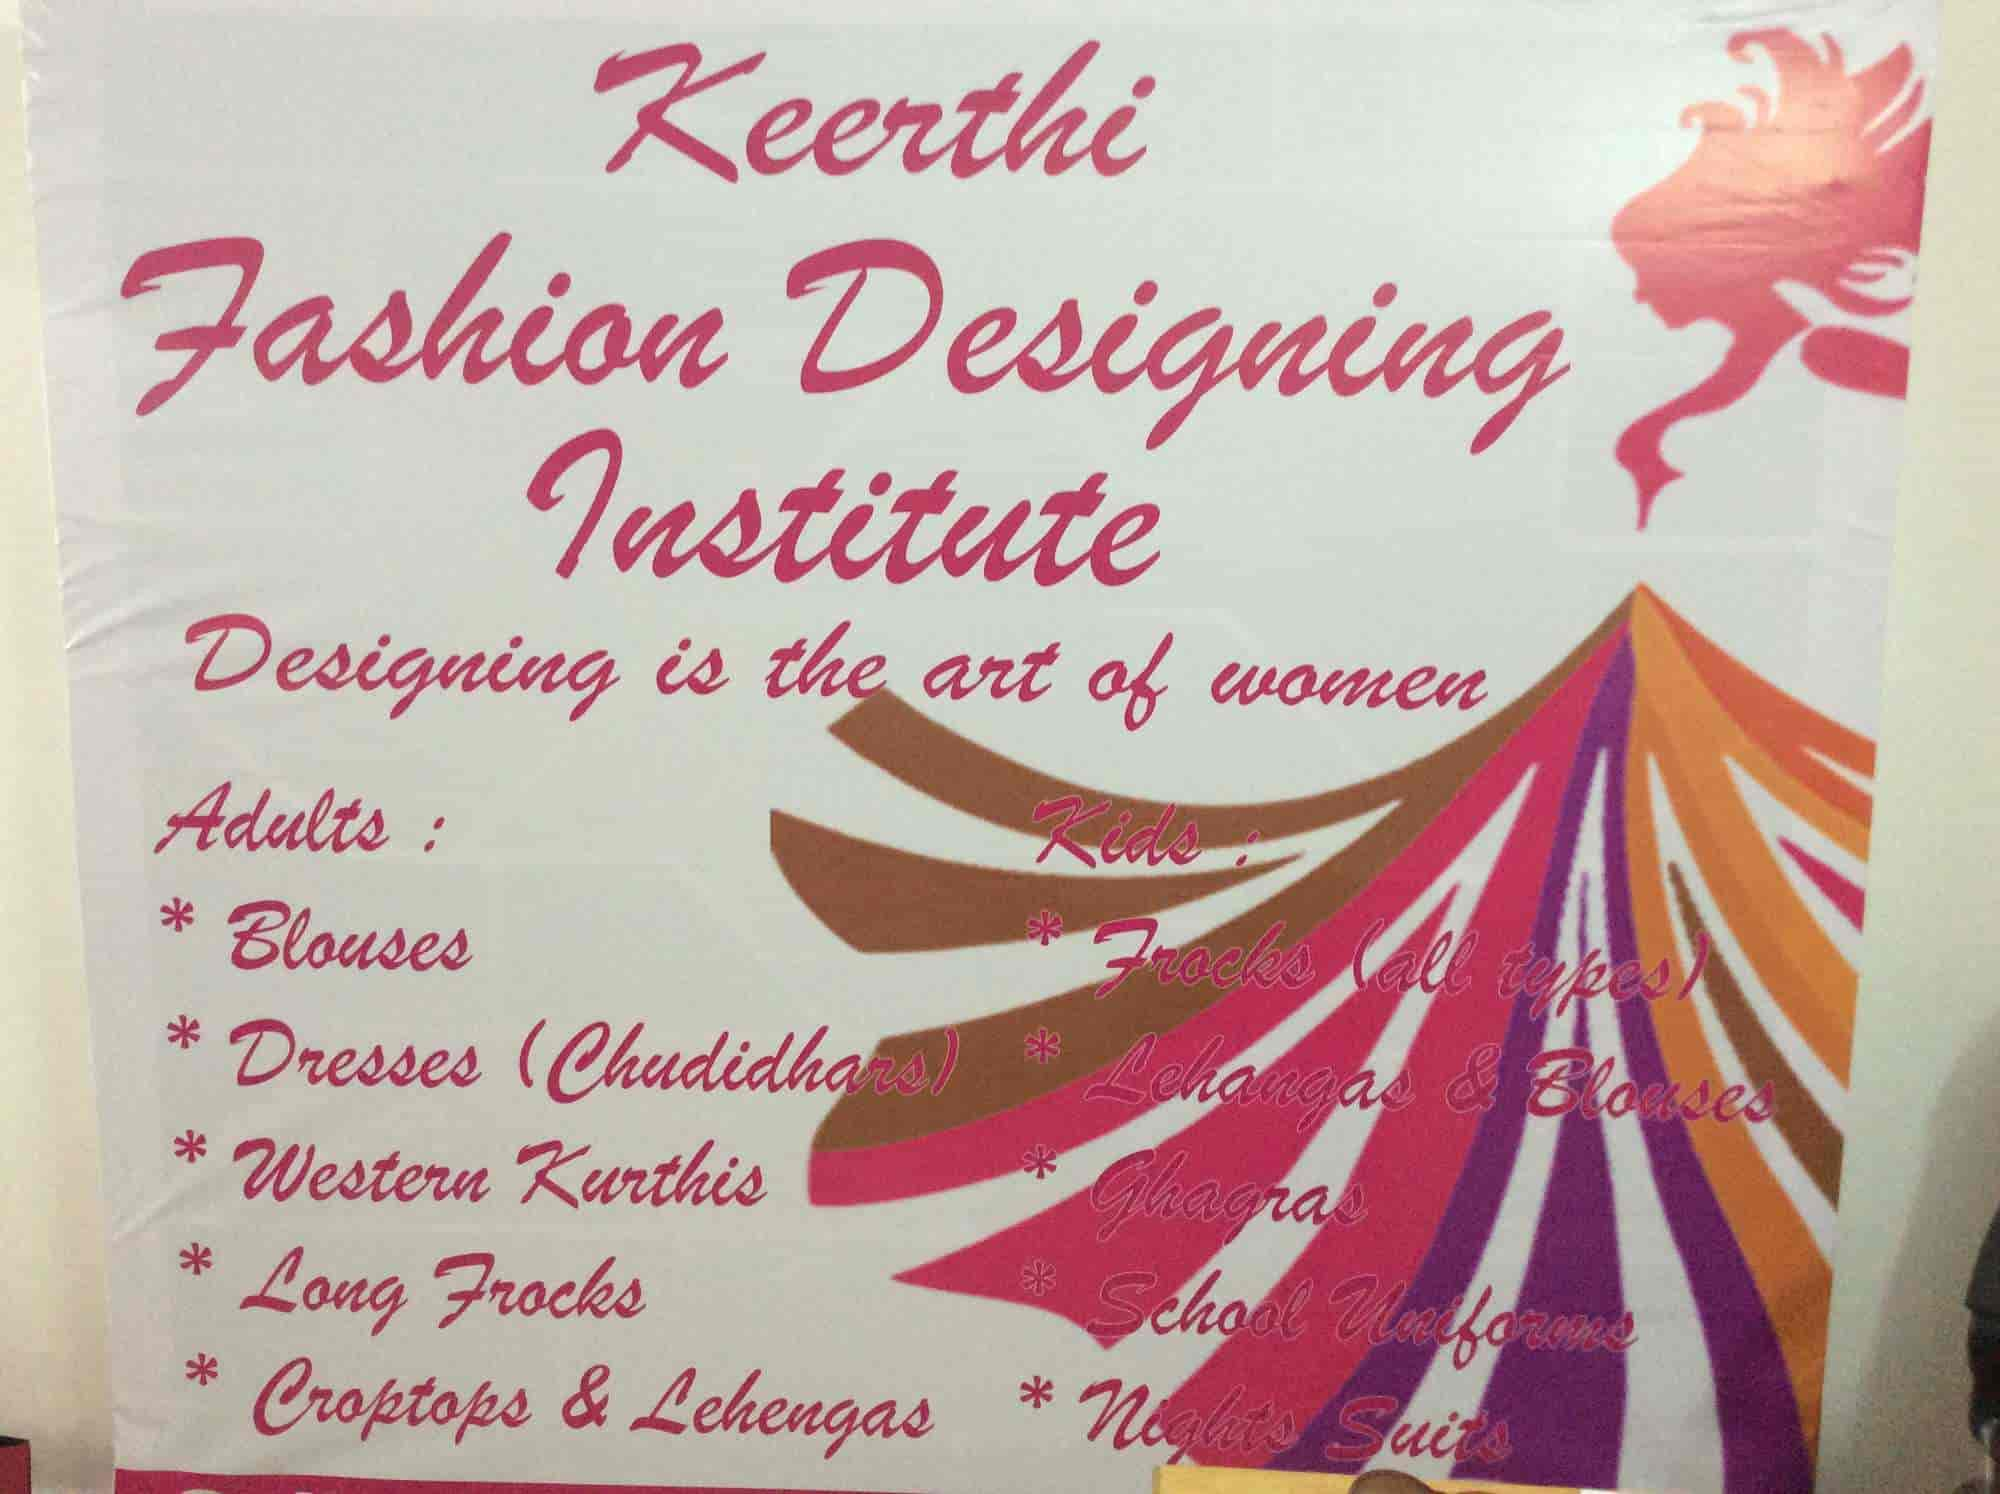 Keerthi Fashion Designing Institute And Tailoring School Gangaram Chanda Nagar Fashion Designing Institutes In Hyderabad Justdial